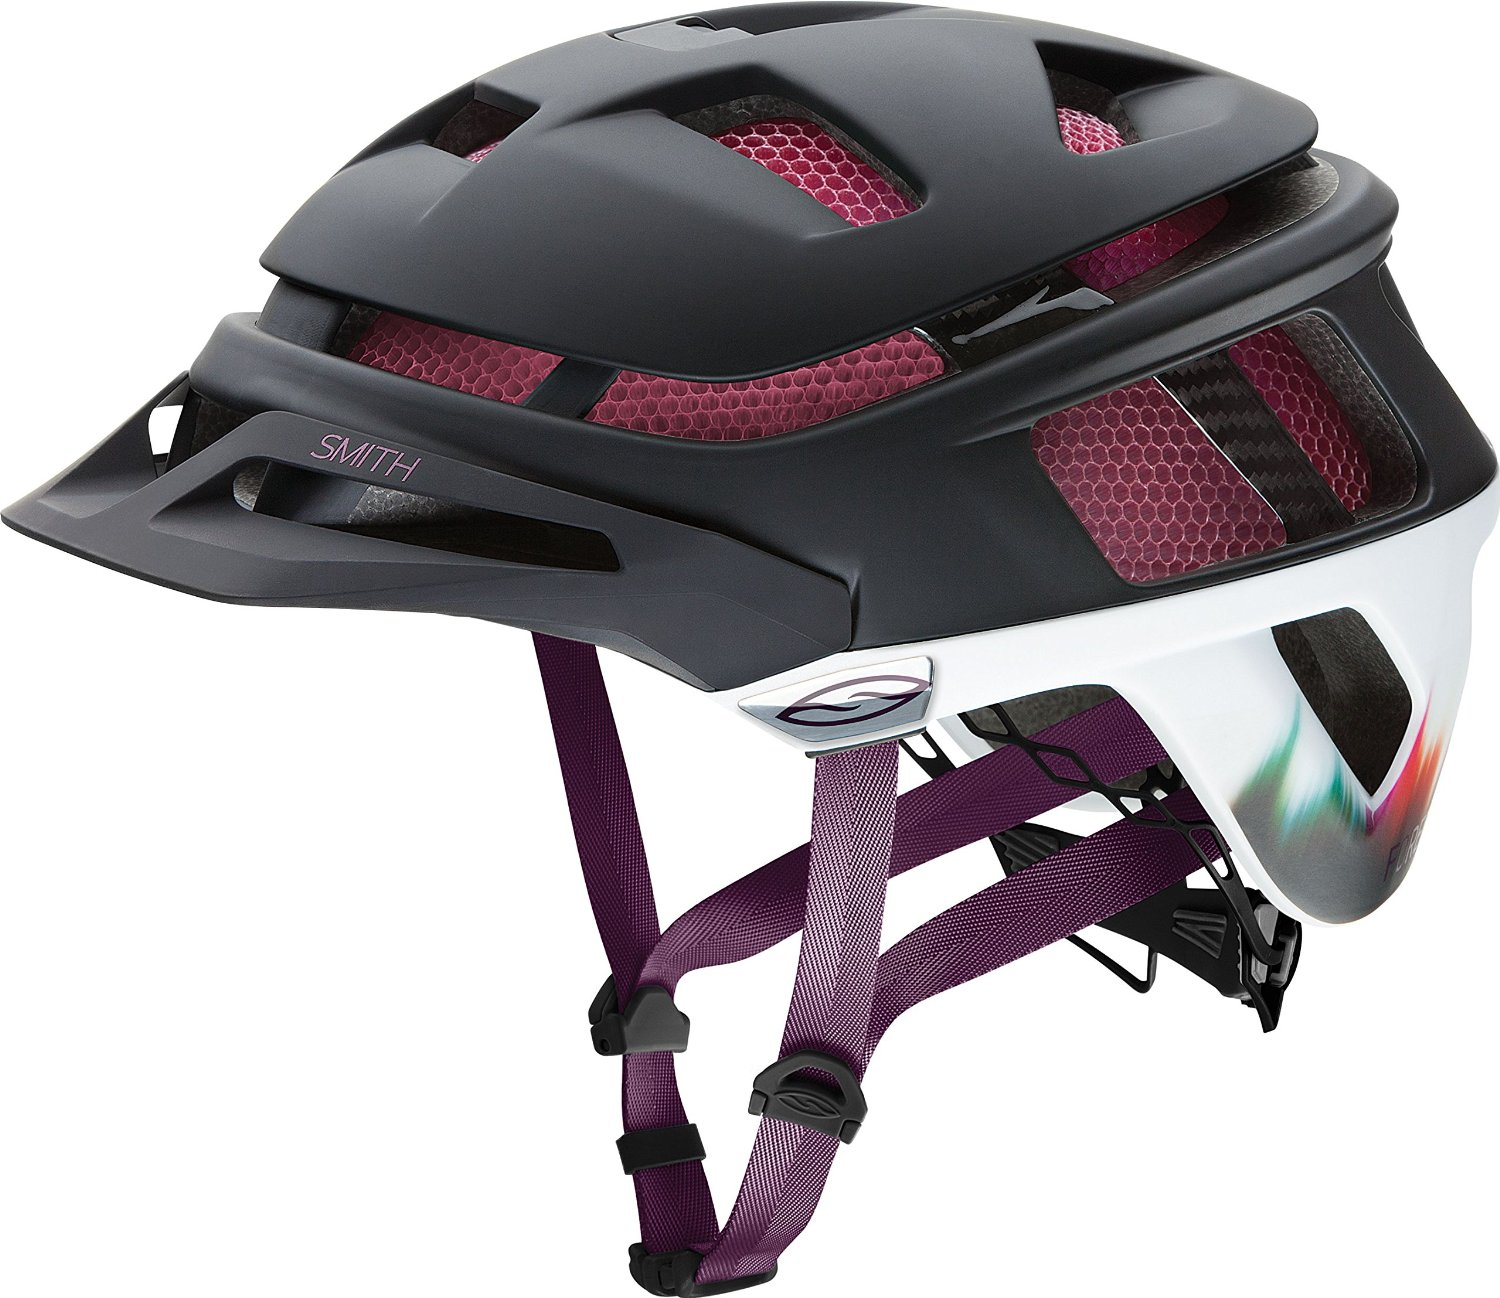 Black Smith Optics Bicycle Helmets